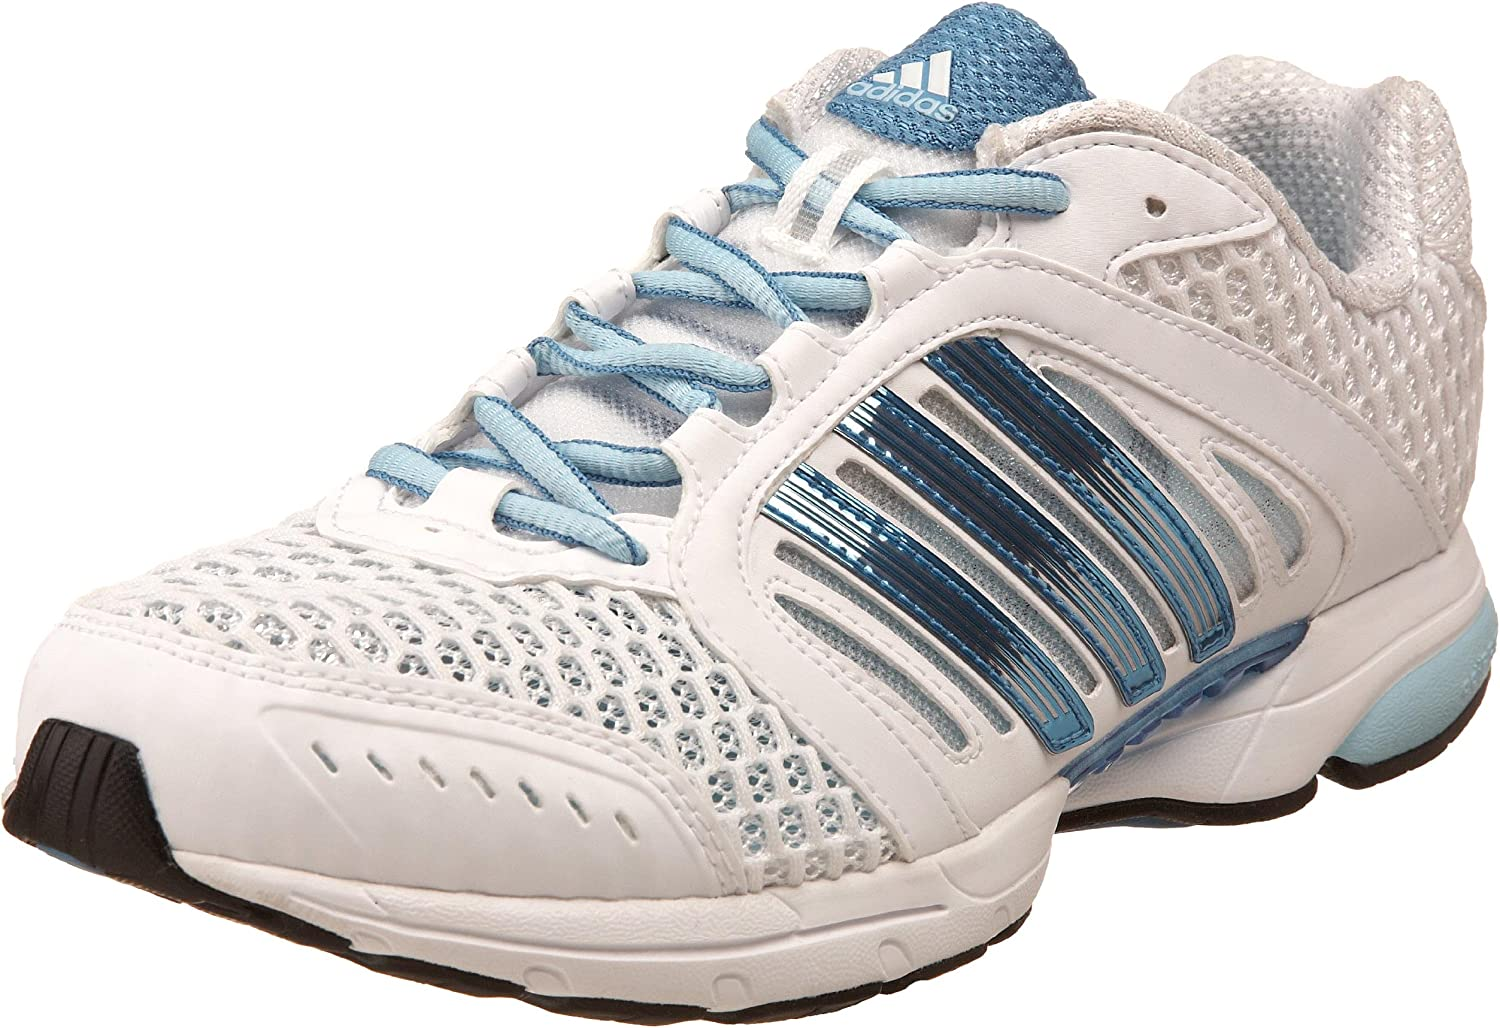 Adidas Women's Climacool Modulate Running shoes